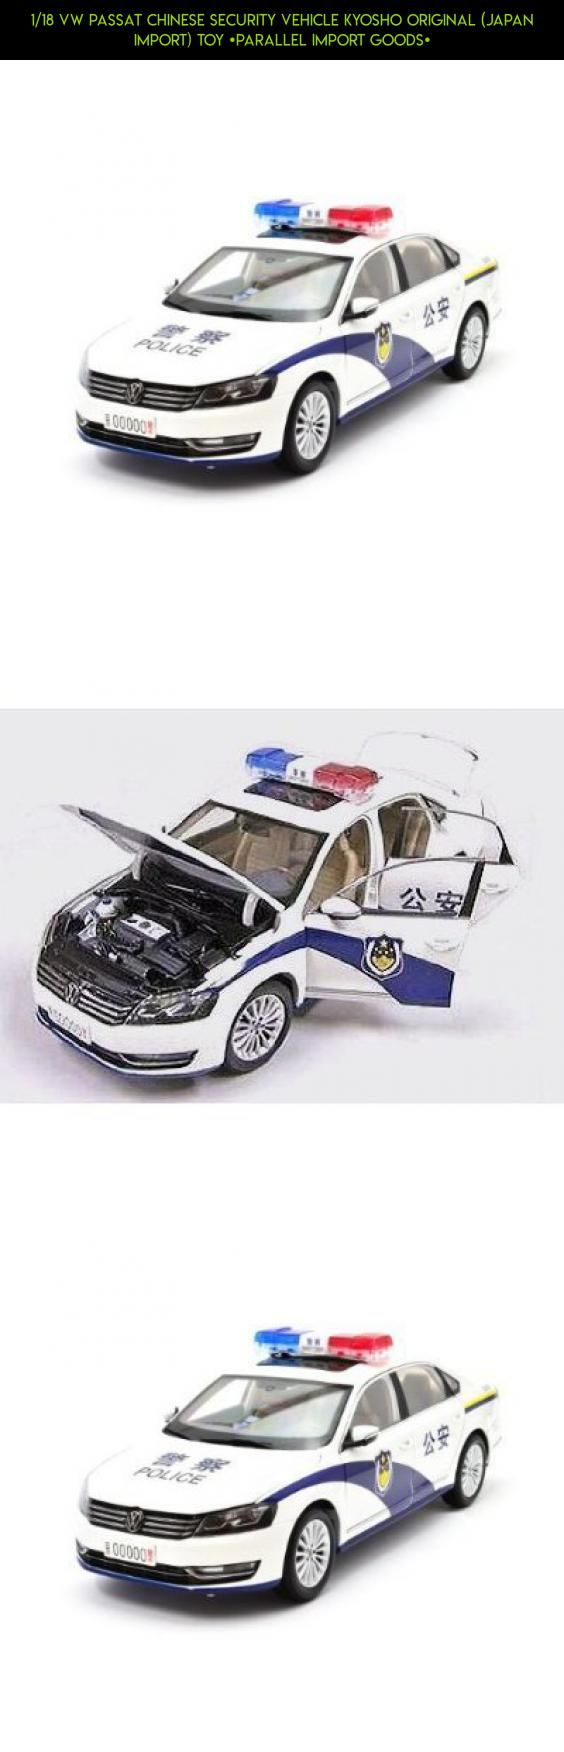 1/18 VW Passat Chinese security vehicle Kyosho original (japan import) toy [parallel import goods] #tech #vw #technology #shopping #gadgets #kit #fpv #drone #products #kyosho #plans #camera #racing #parts